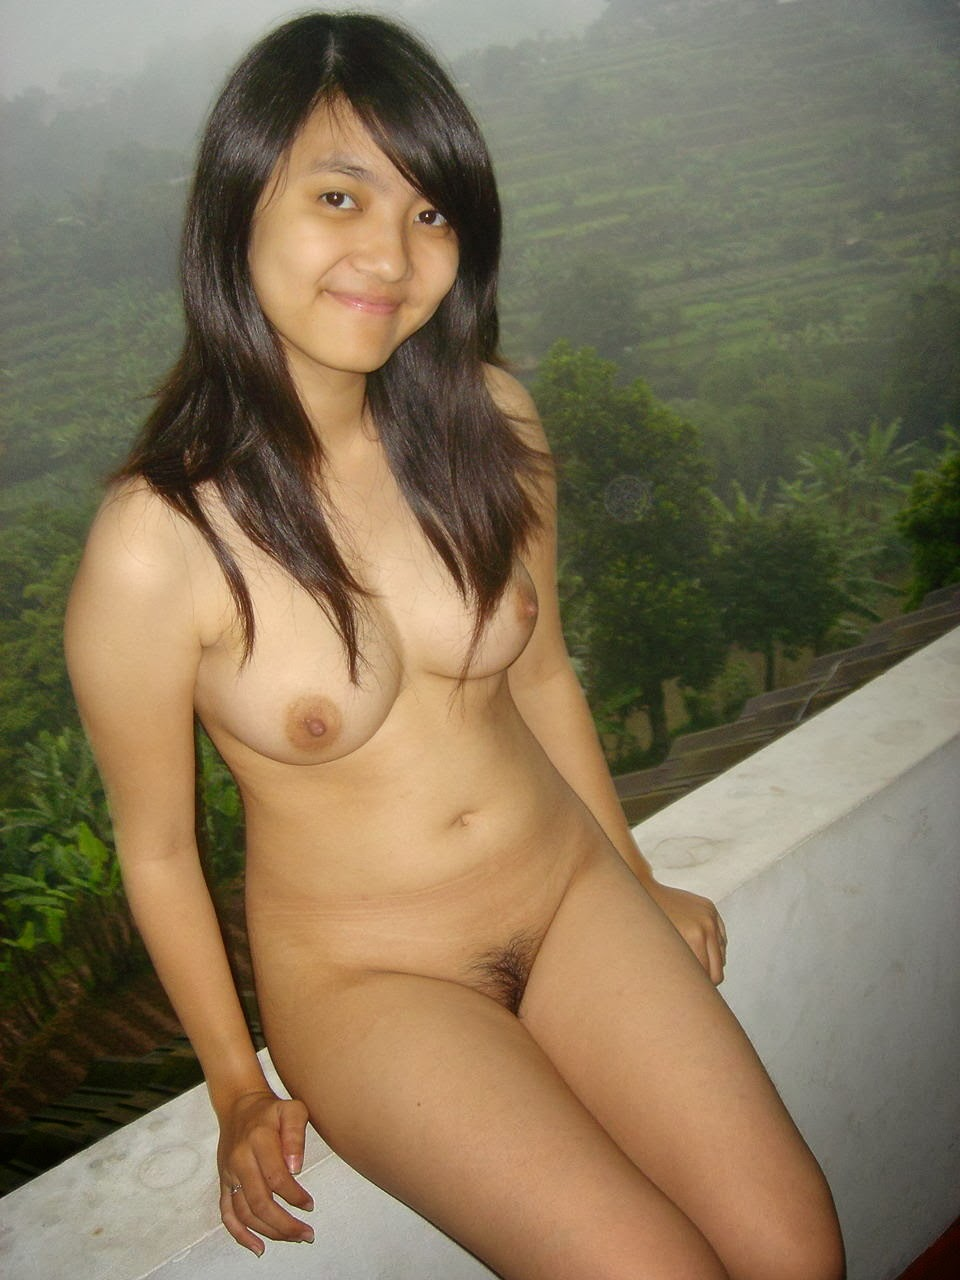 Has indonesian nude sexy couple opinion, false